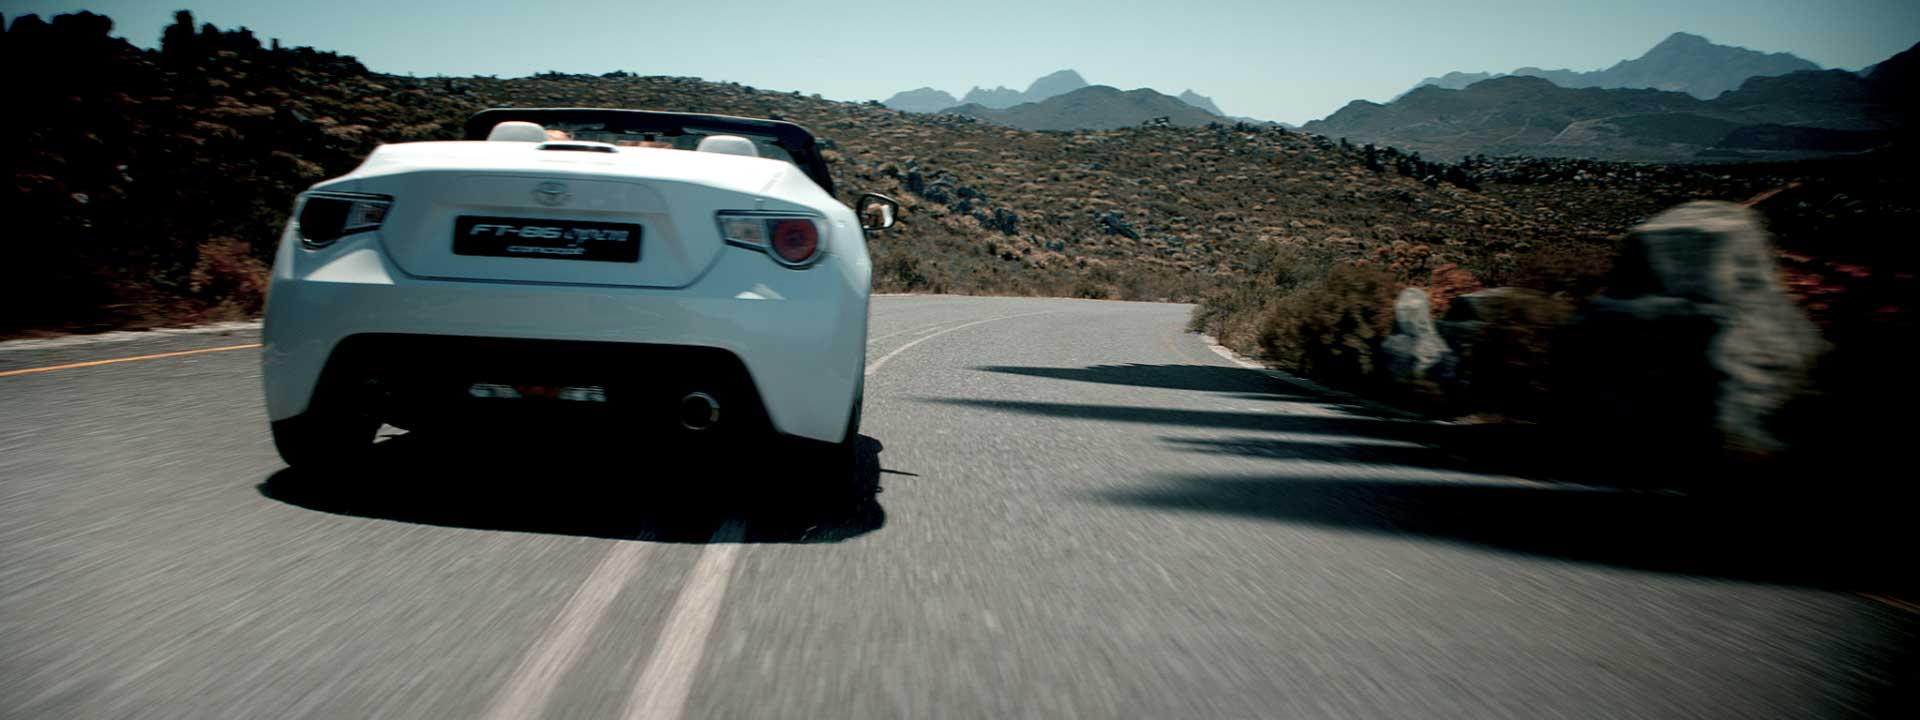 Woman driving car. Still from Toyota FT-86 open – Commercial